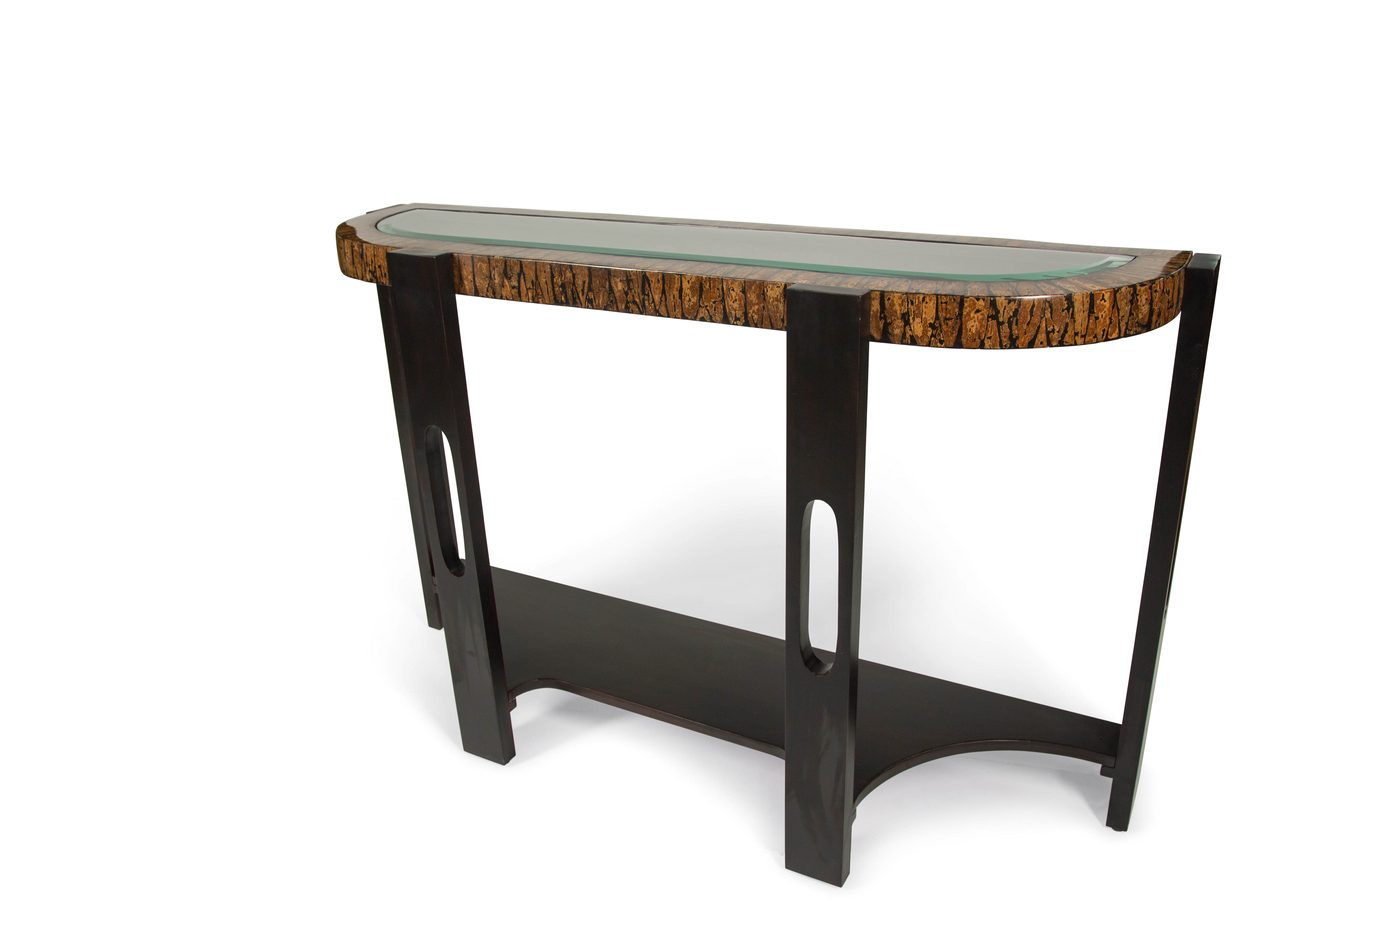 montecristo transitional curved sofa table with stone and glass top 15